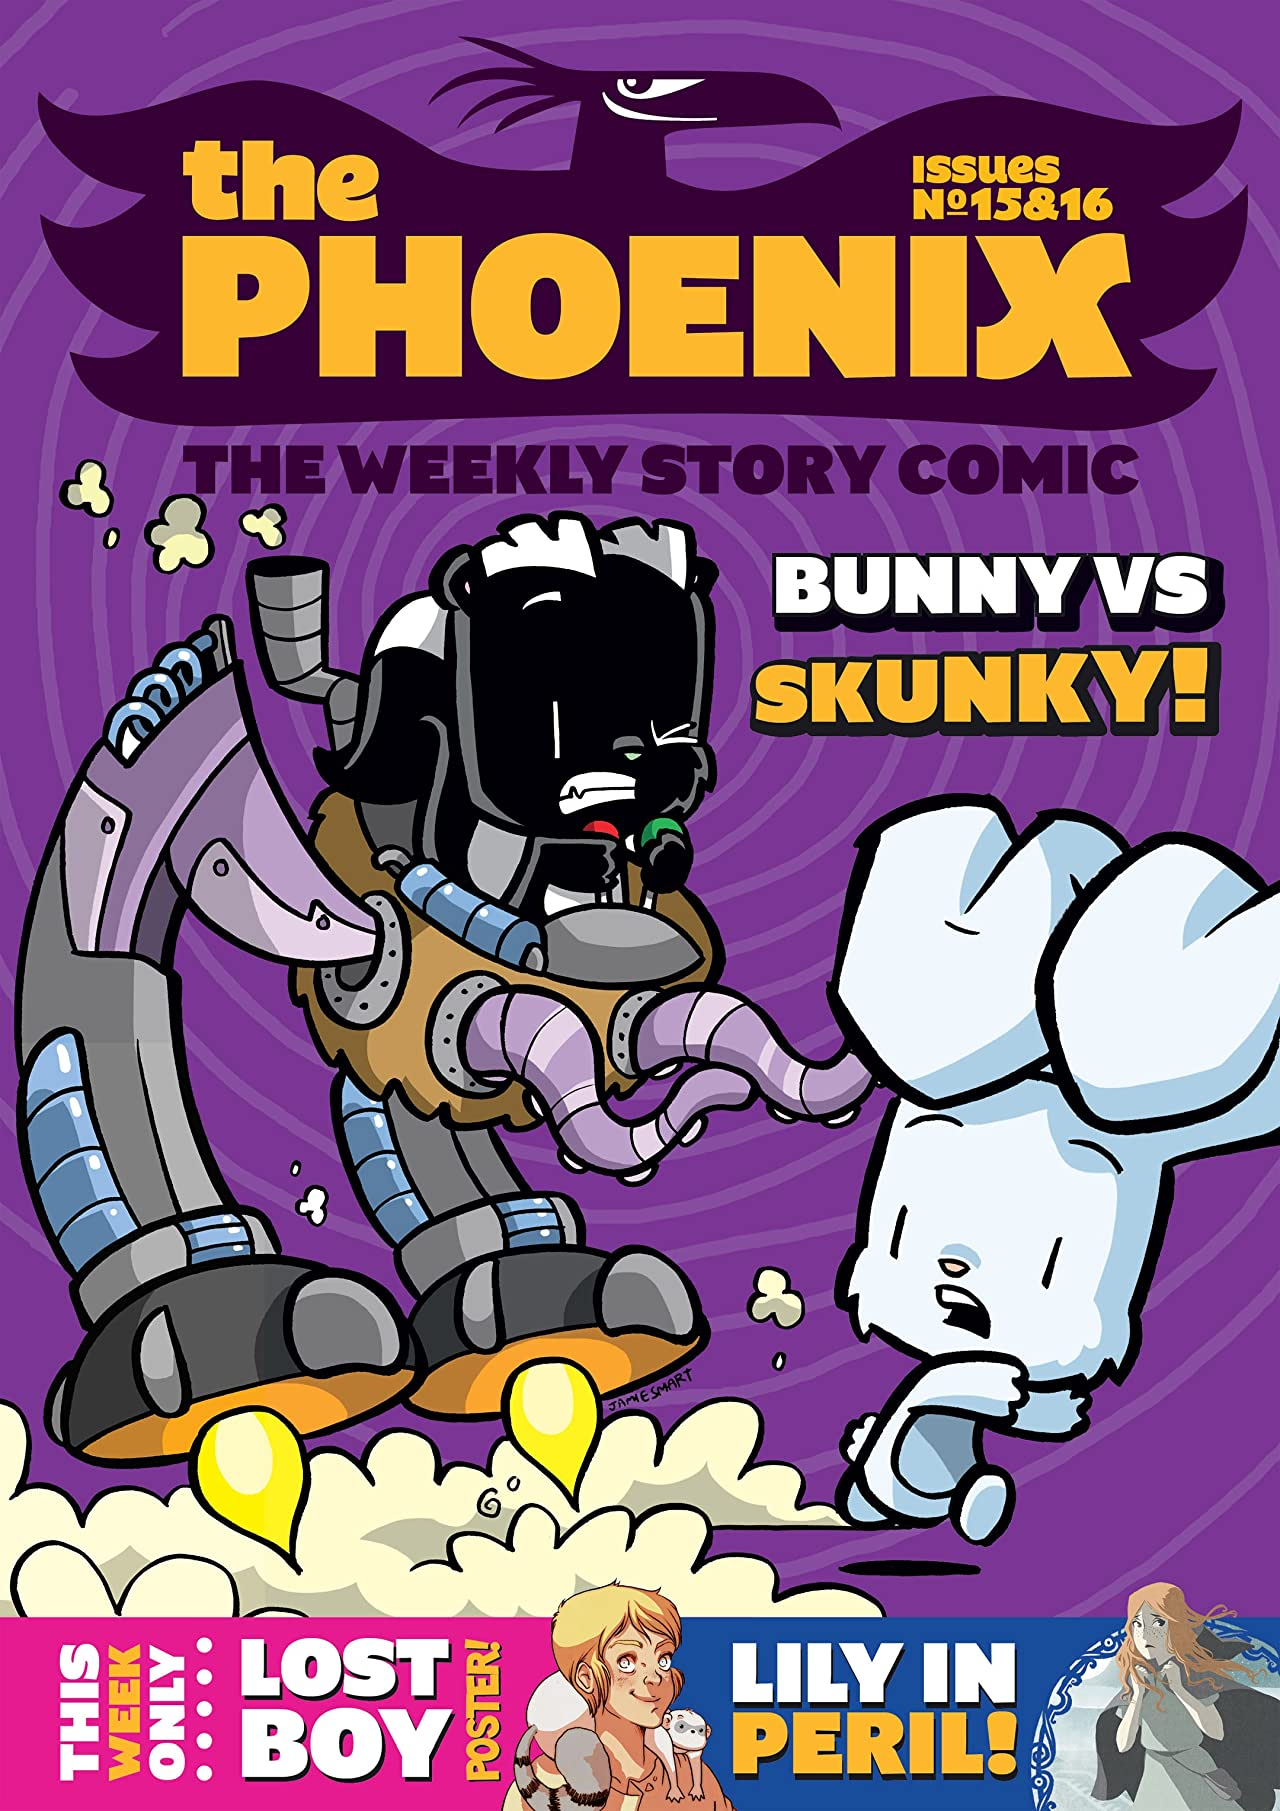 The Phoenix #15 & 16: The Weekly Story Comic (Double Issue)